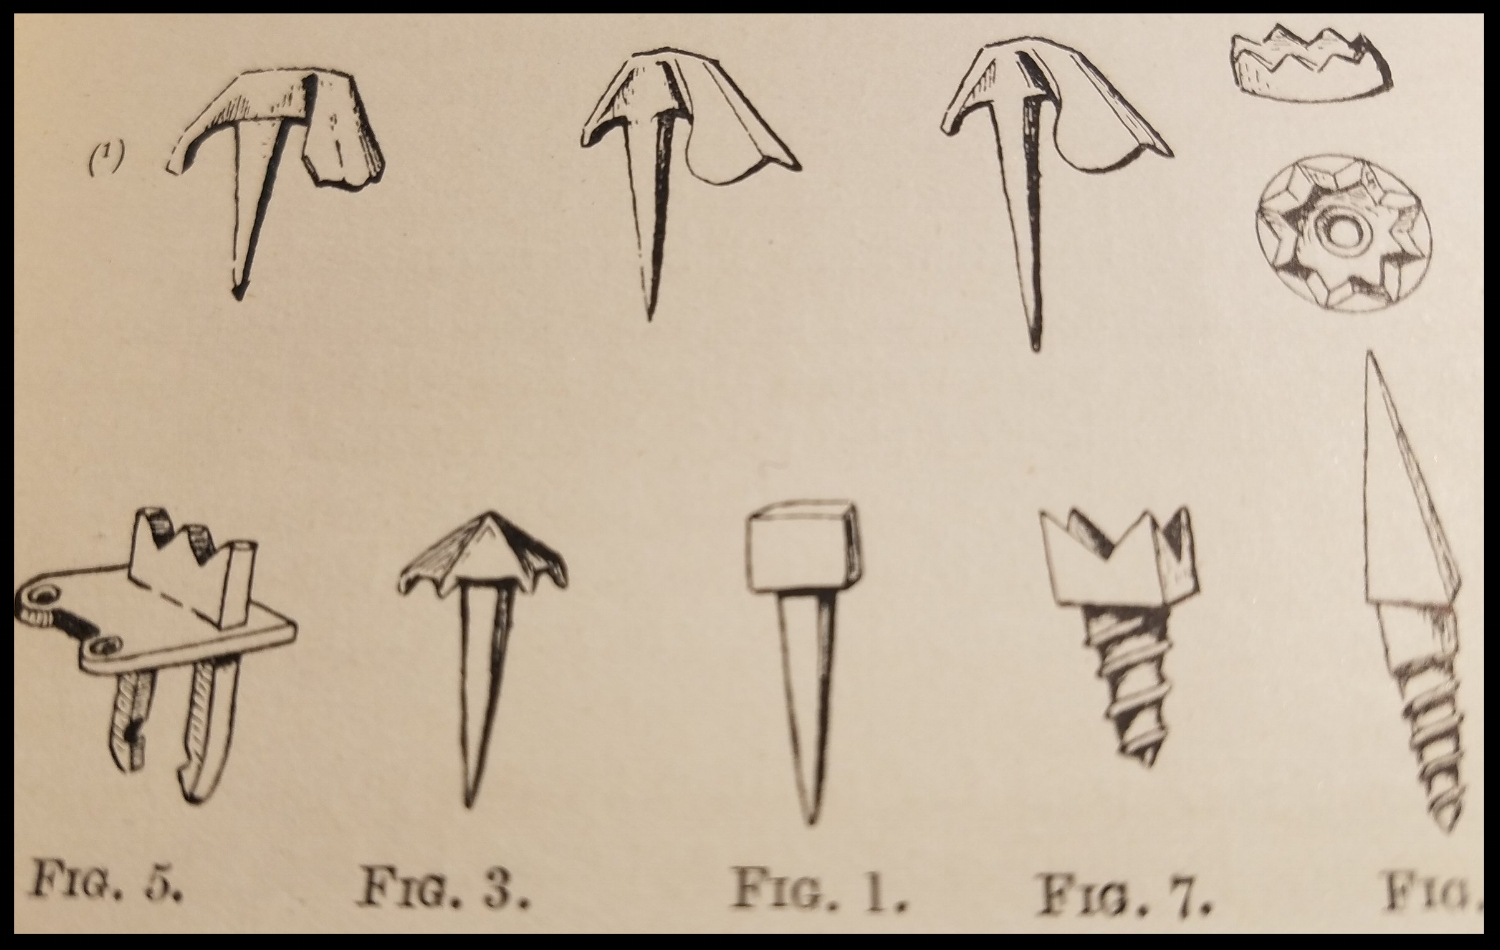 Illustration of boot nails from Mountaineering Art by Harold Raeburn, 1920.